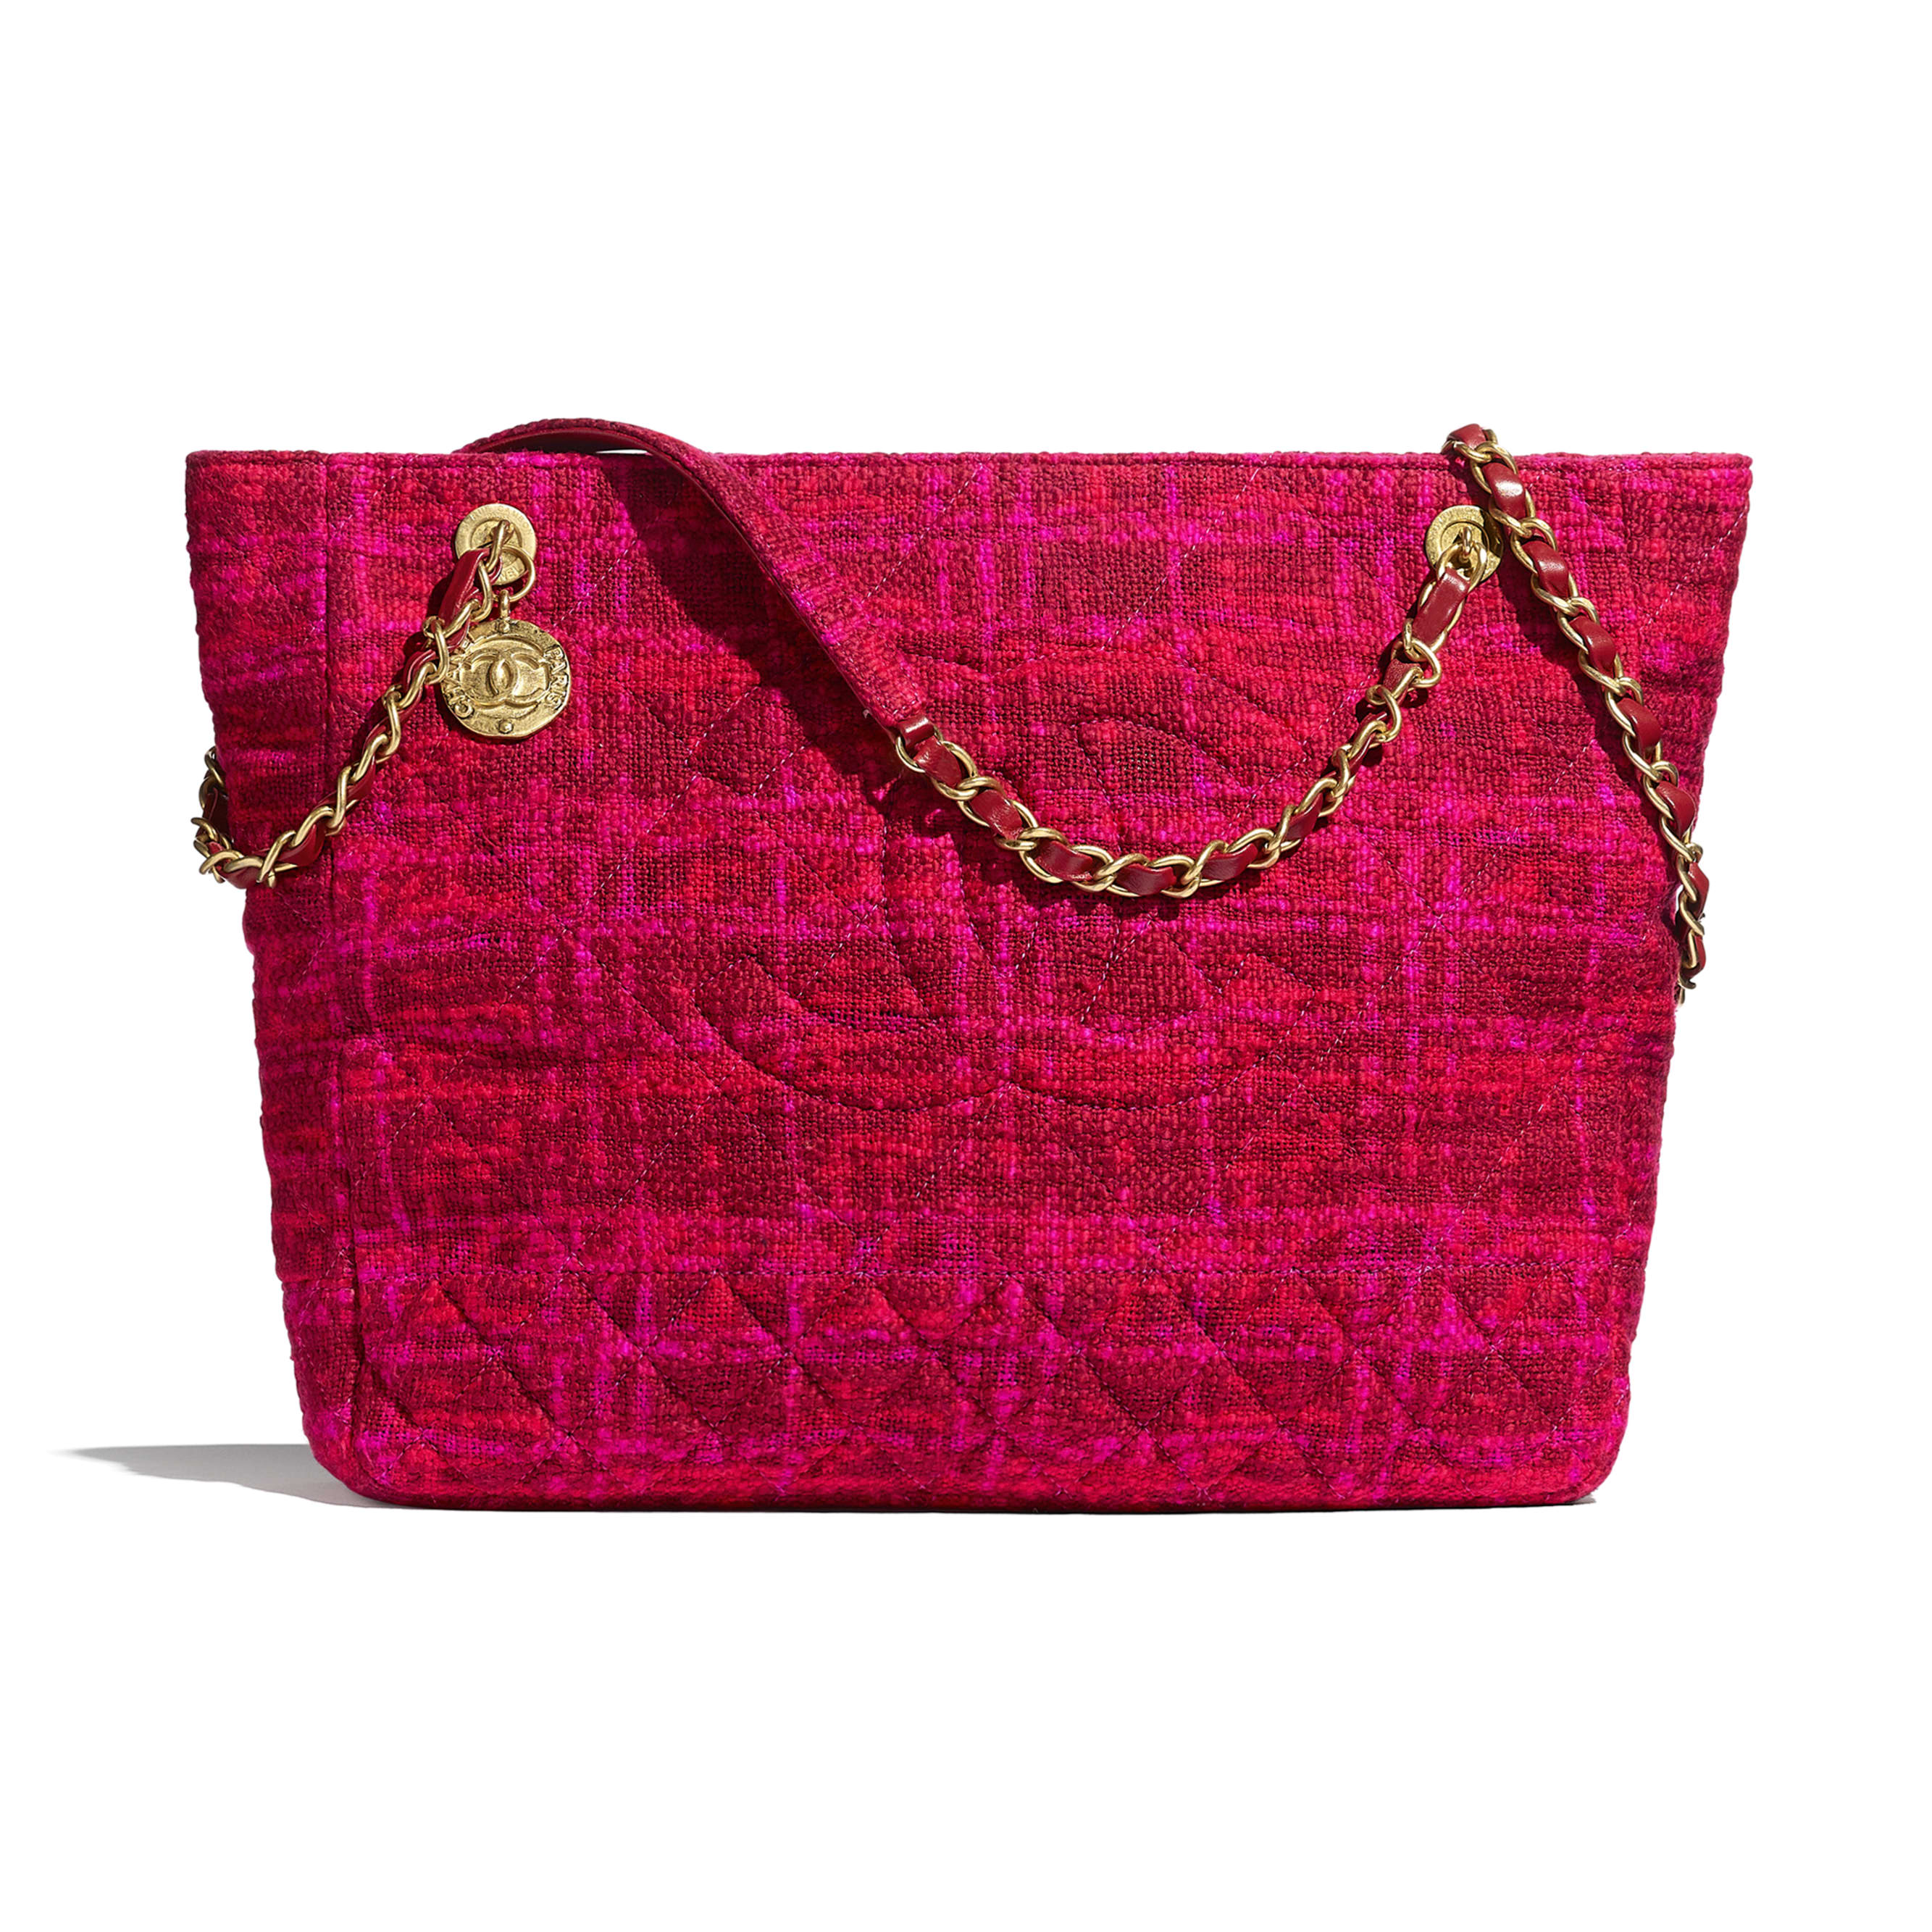 Large Shopping Bag - Fuchsia & Red - Cotton Tweed & Gold-Tone Metal - CHANEL - Default view - see standard sized version